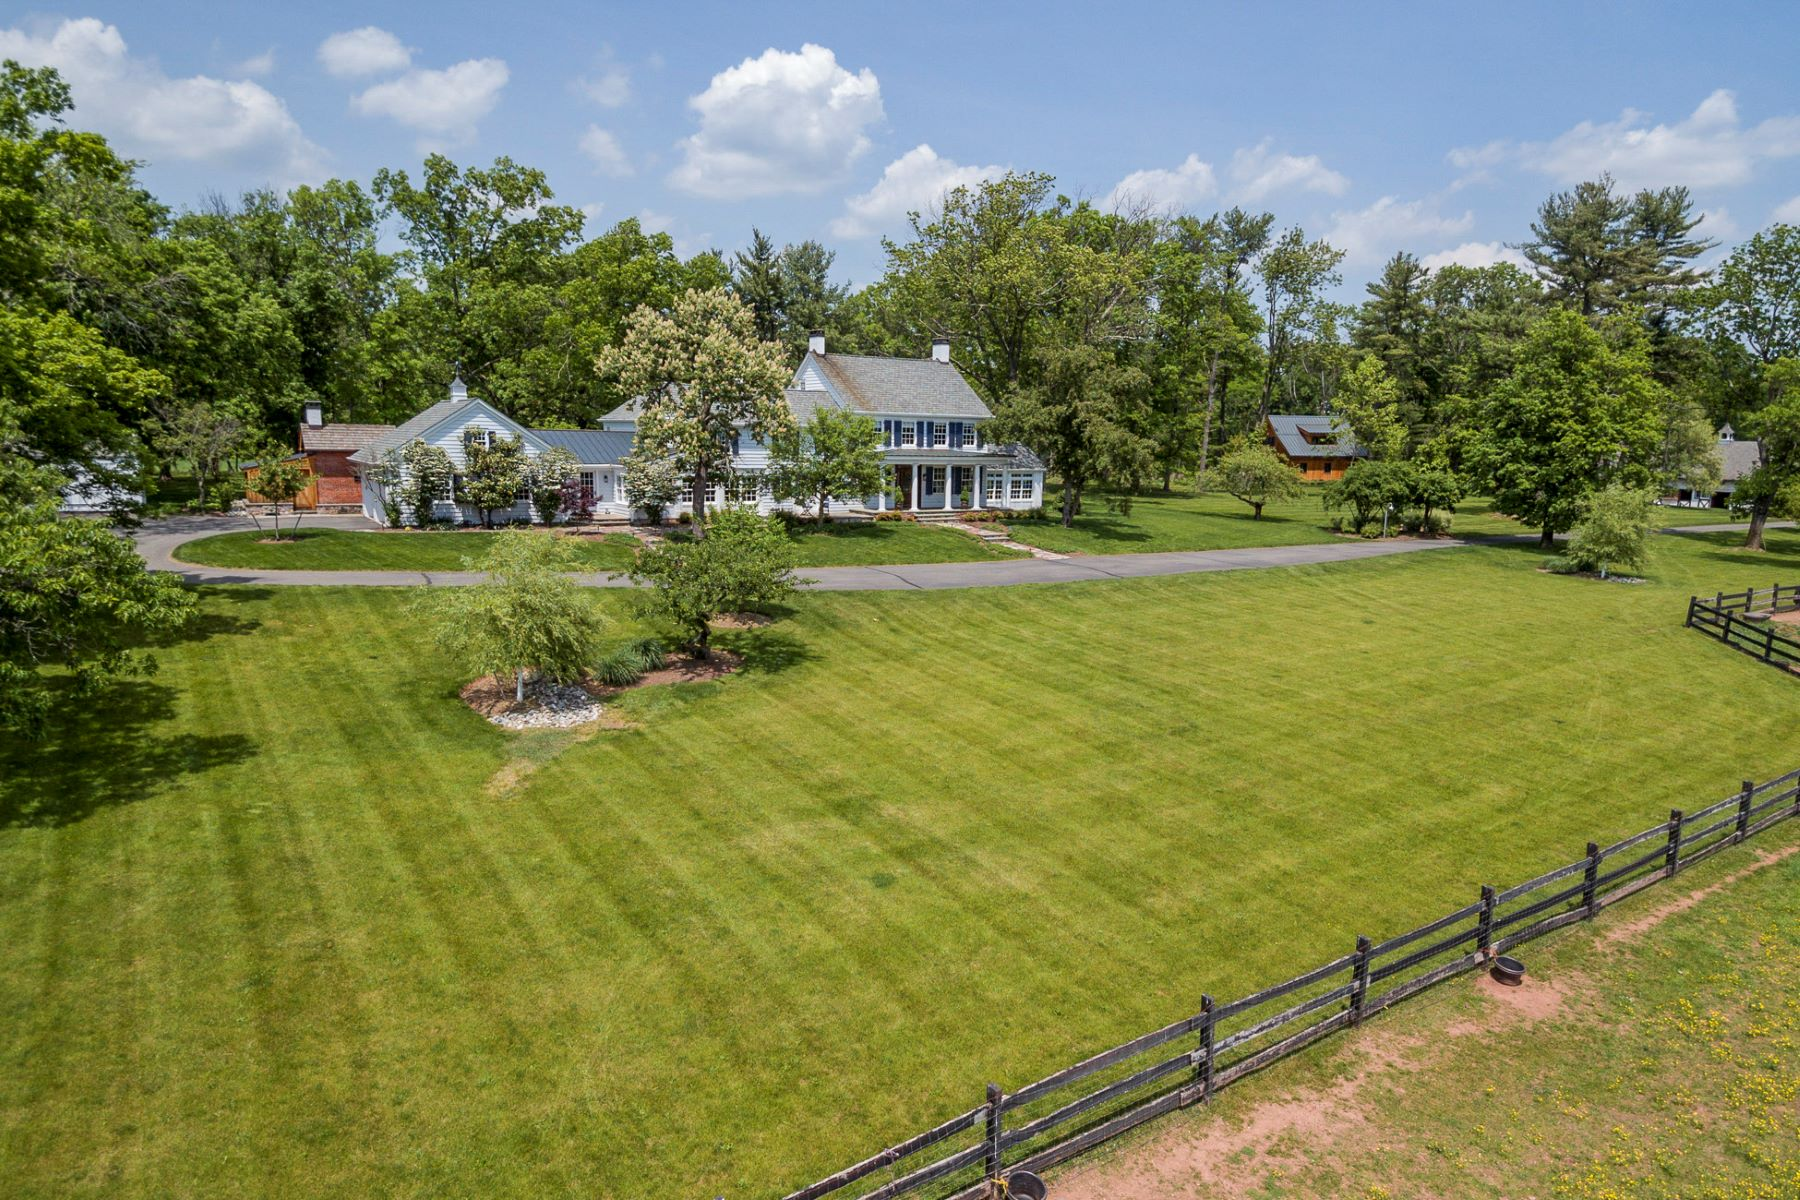 Single Family Homes for Sale at Historic Farm Reimagined for the Modern Equestrian - Hopewell Township 266 Province Line Road Skillman, New Jersey 08558 United States